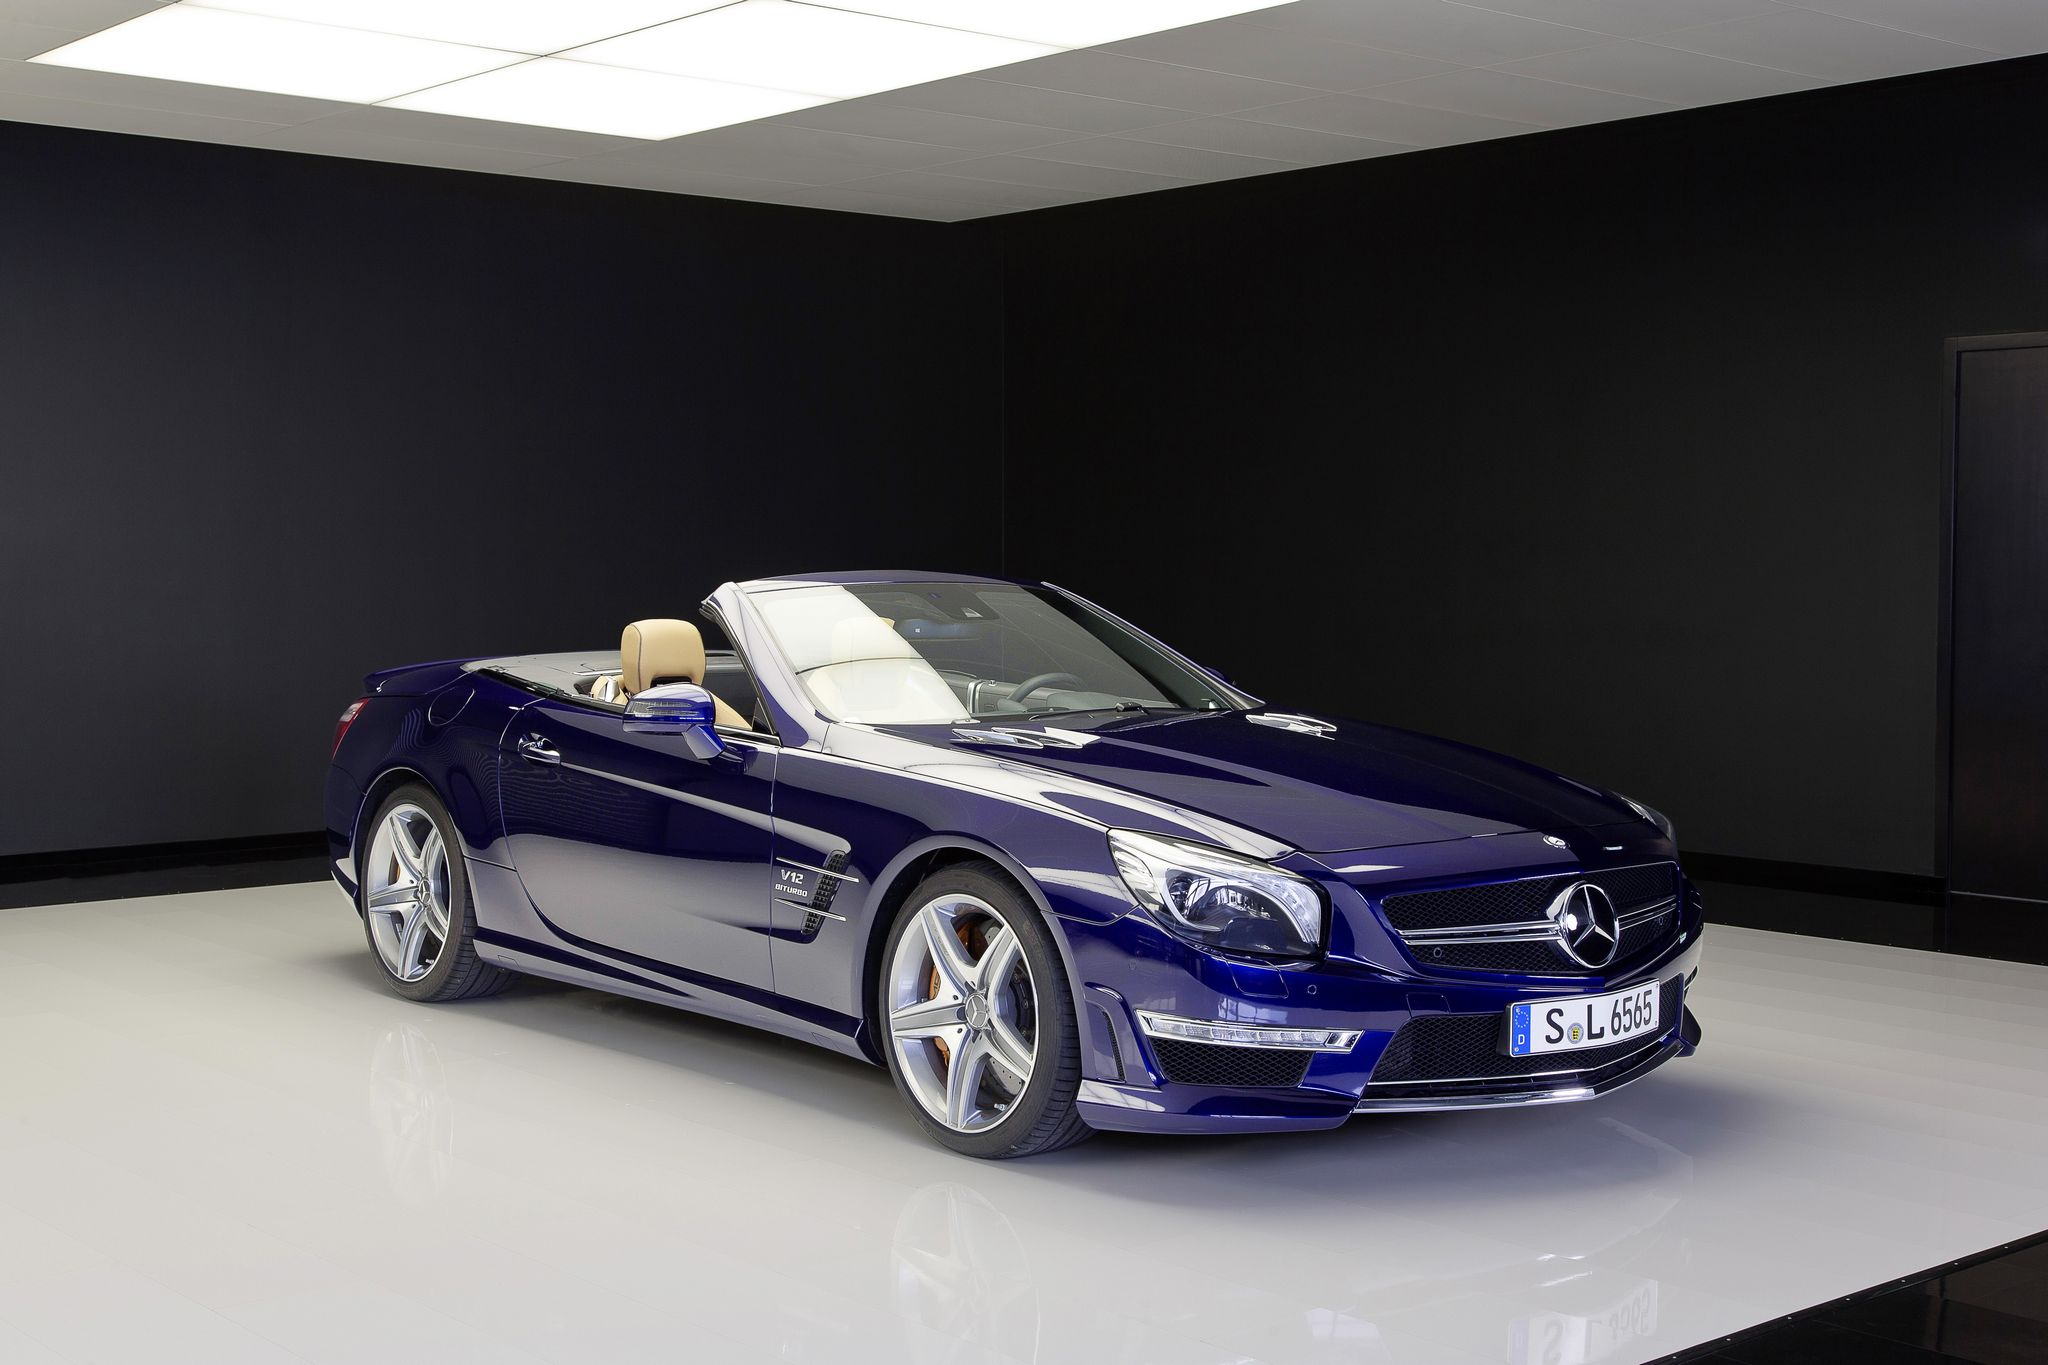 2019 Mercedes Benz Sl 65 Amg Car Photos Catalog 2018